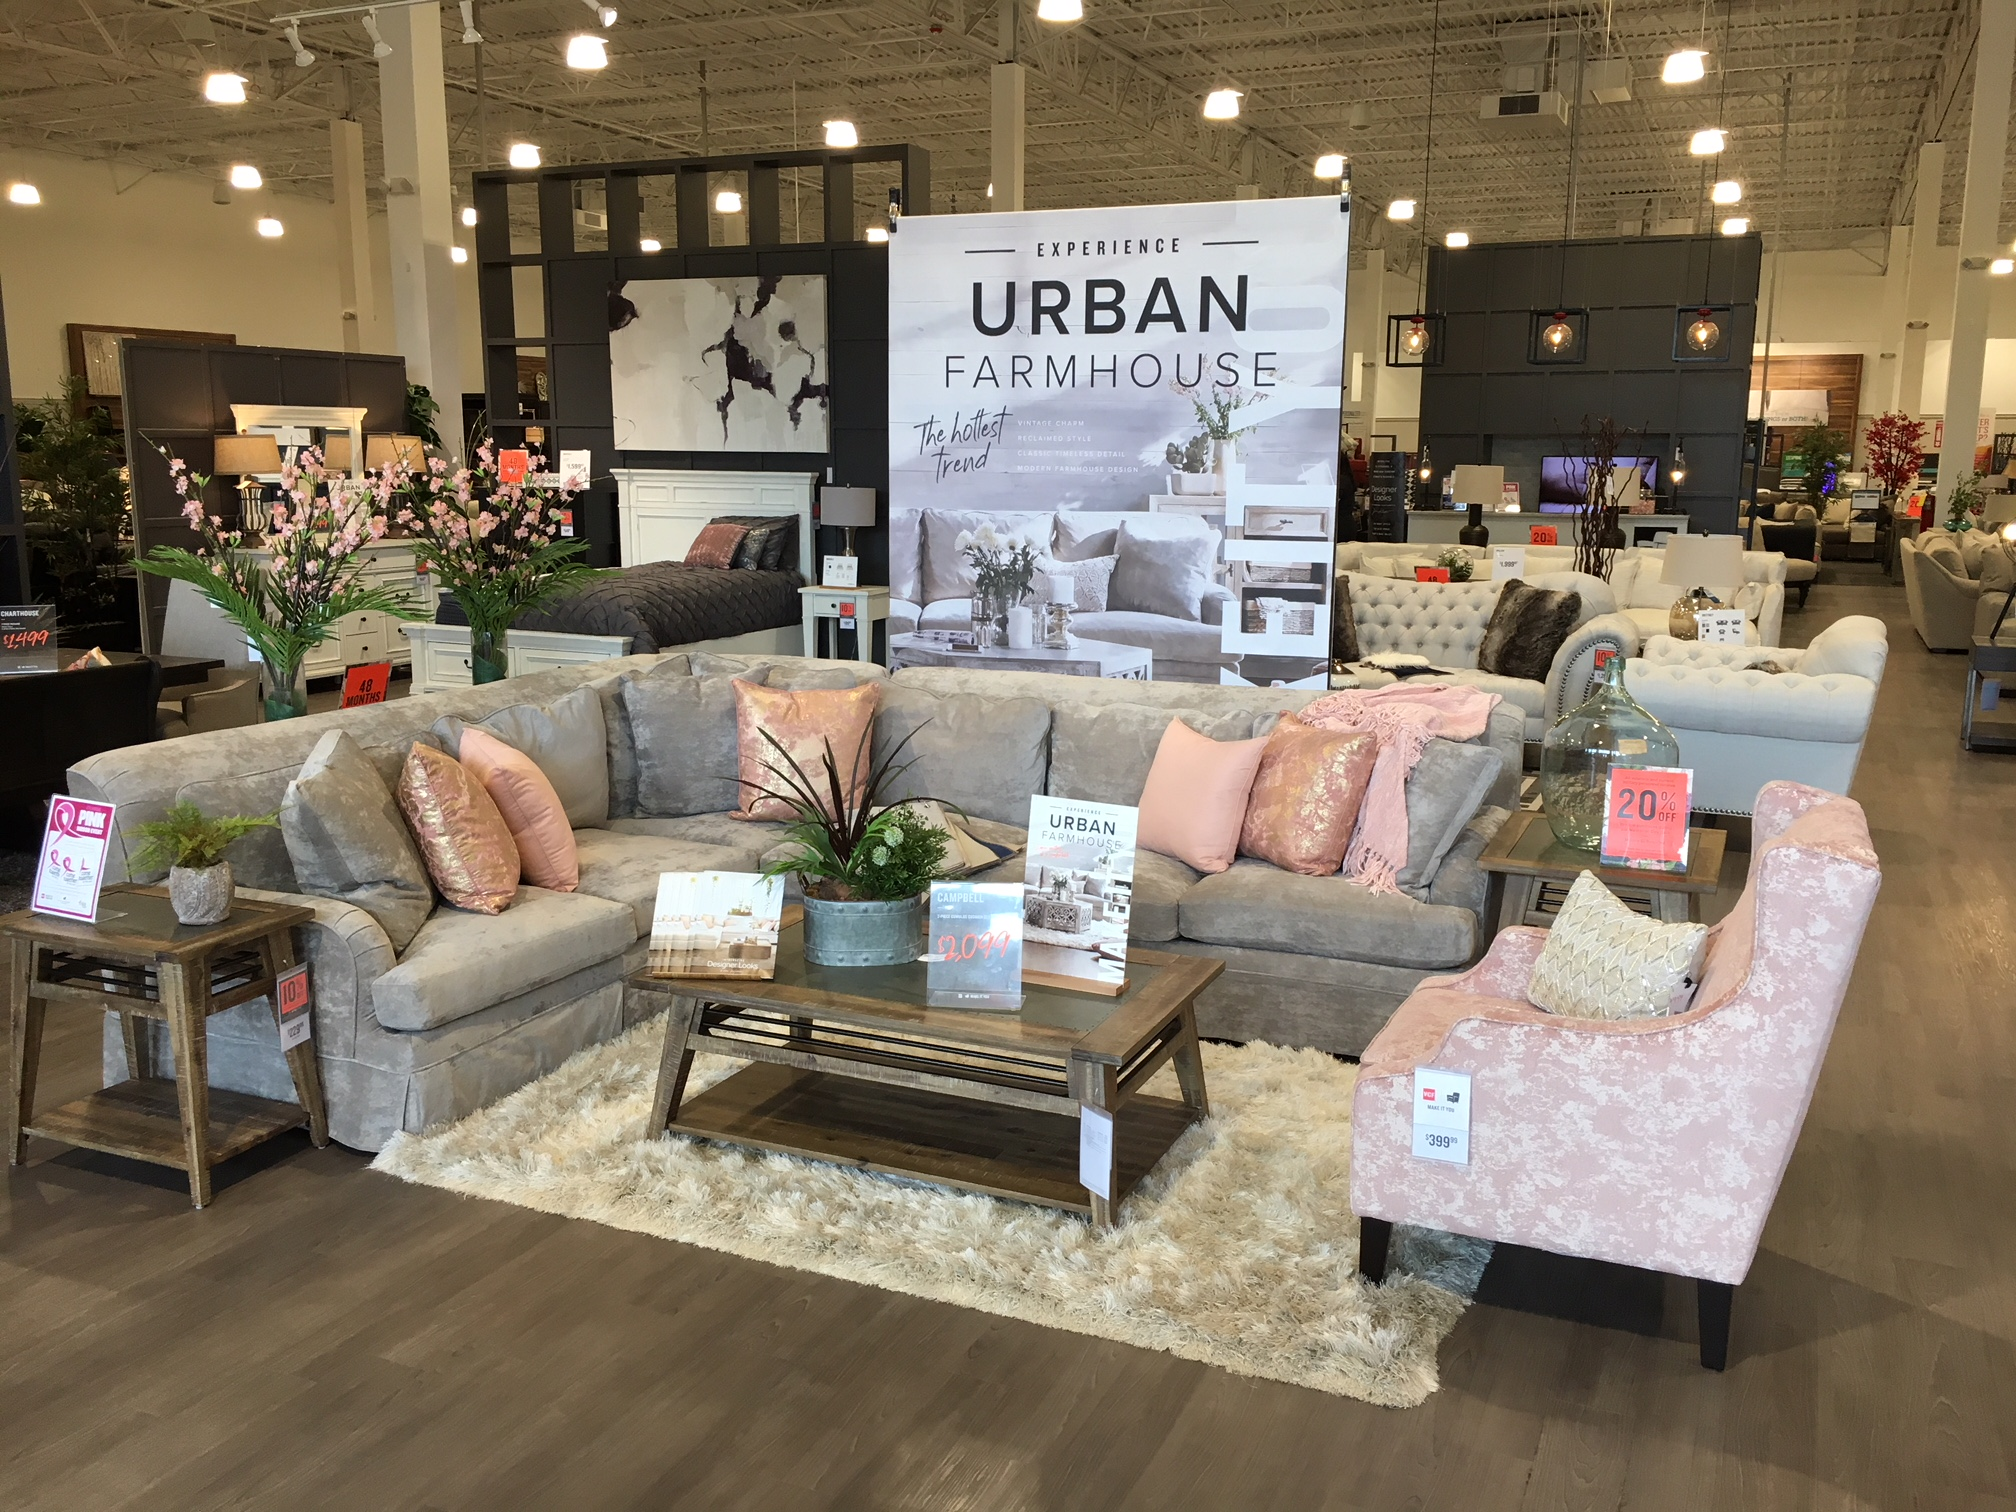 Charmant American Signature Furniture 7461 N Point Pkwy Alpharetta, GA Furniture  Stores   MapQuest